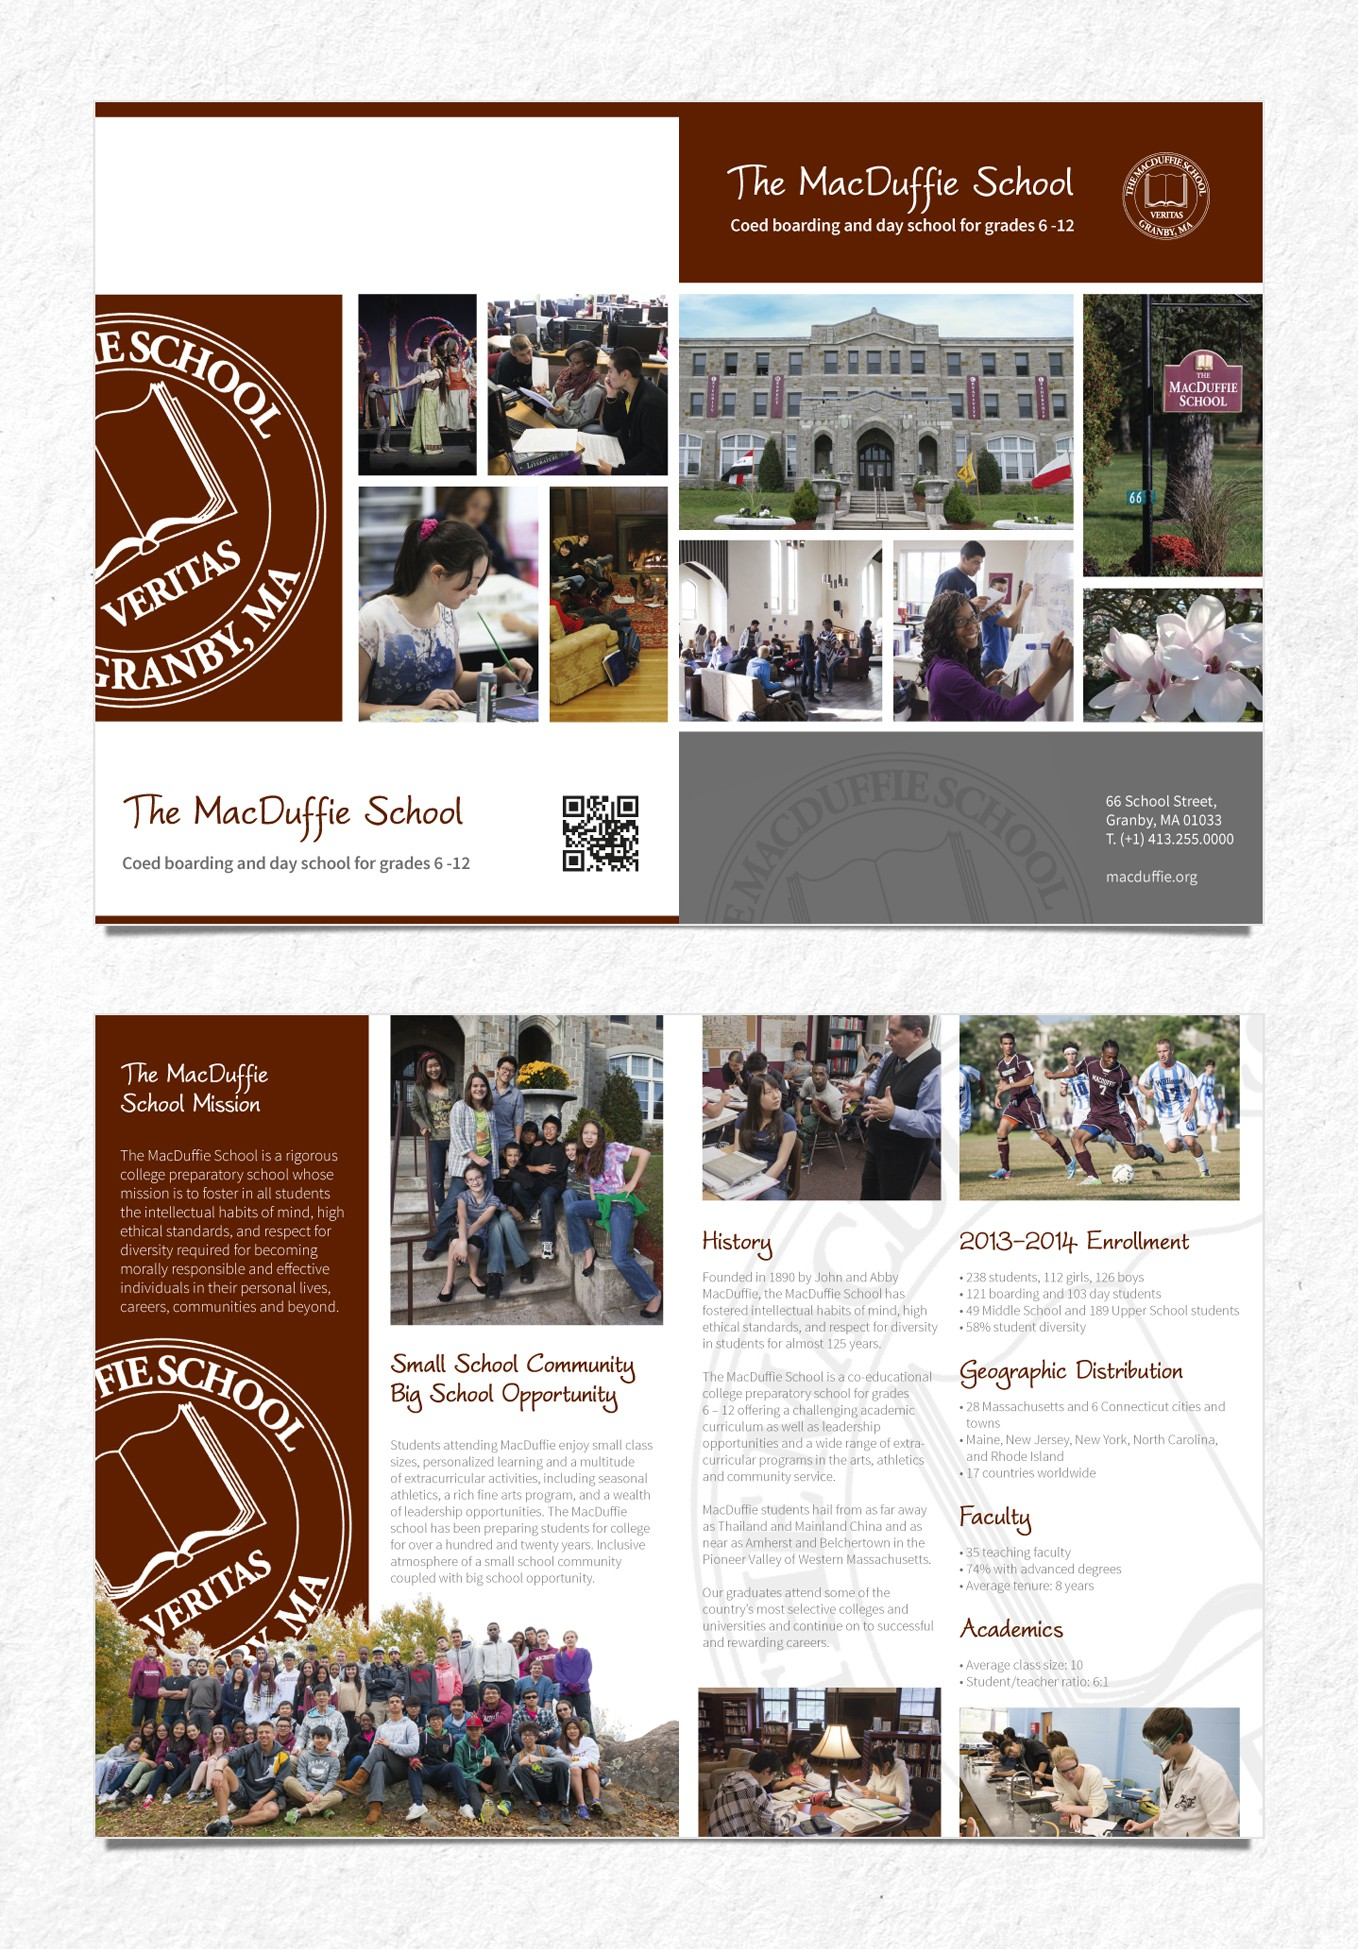 Create a new contemporary brochure for The MacDuffie School